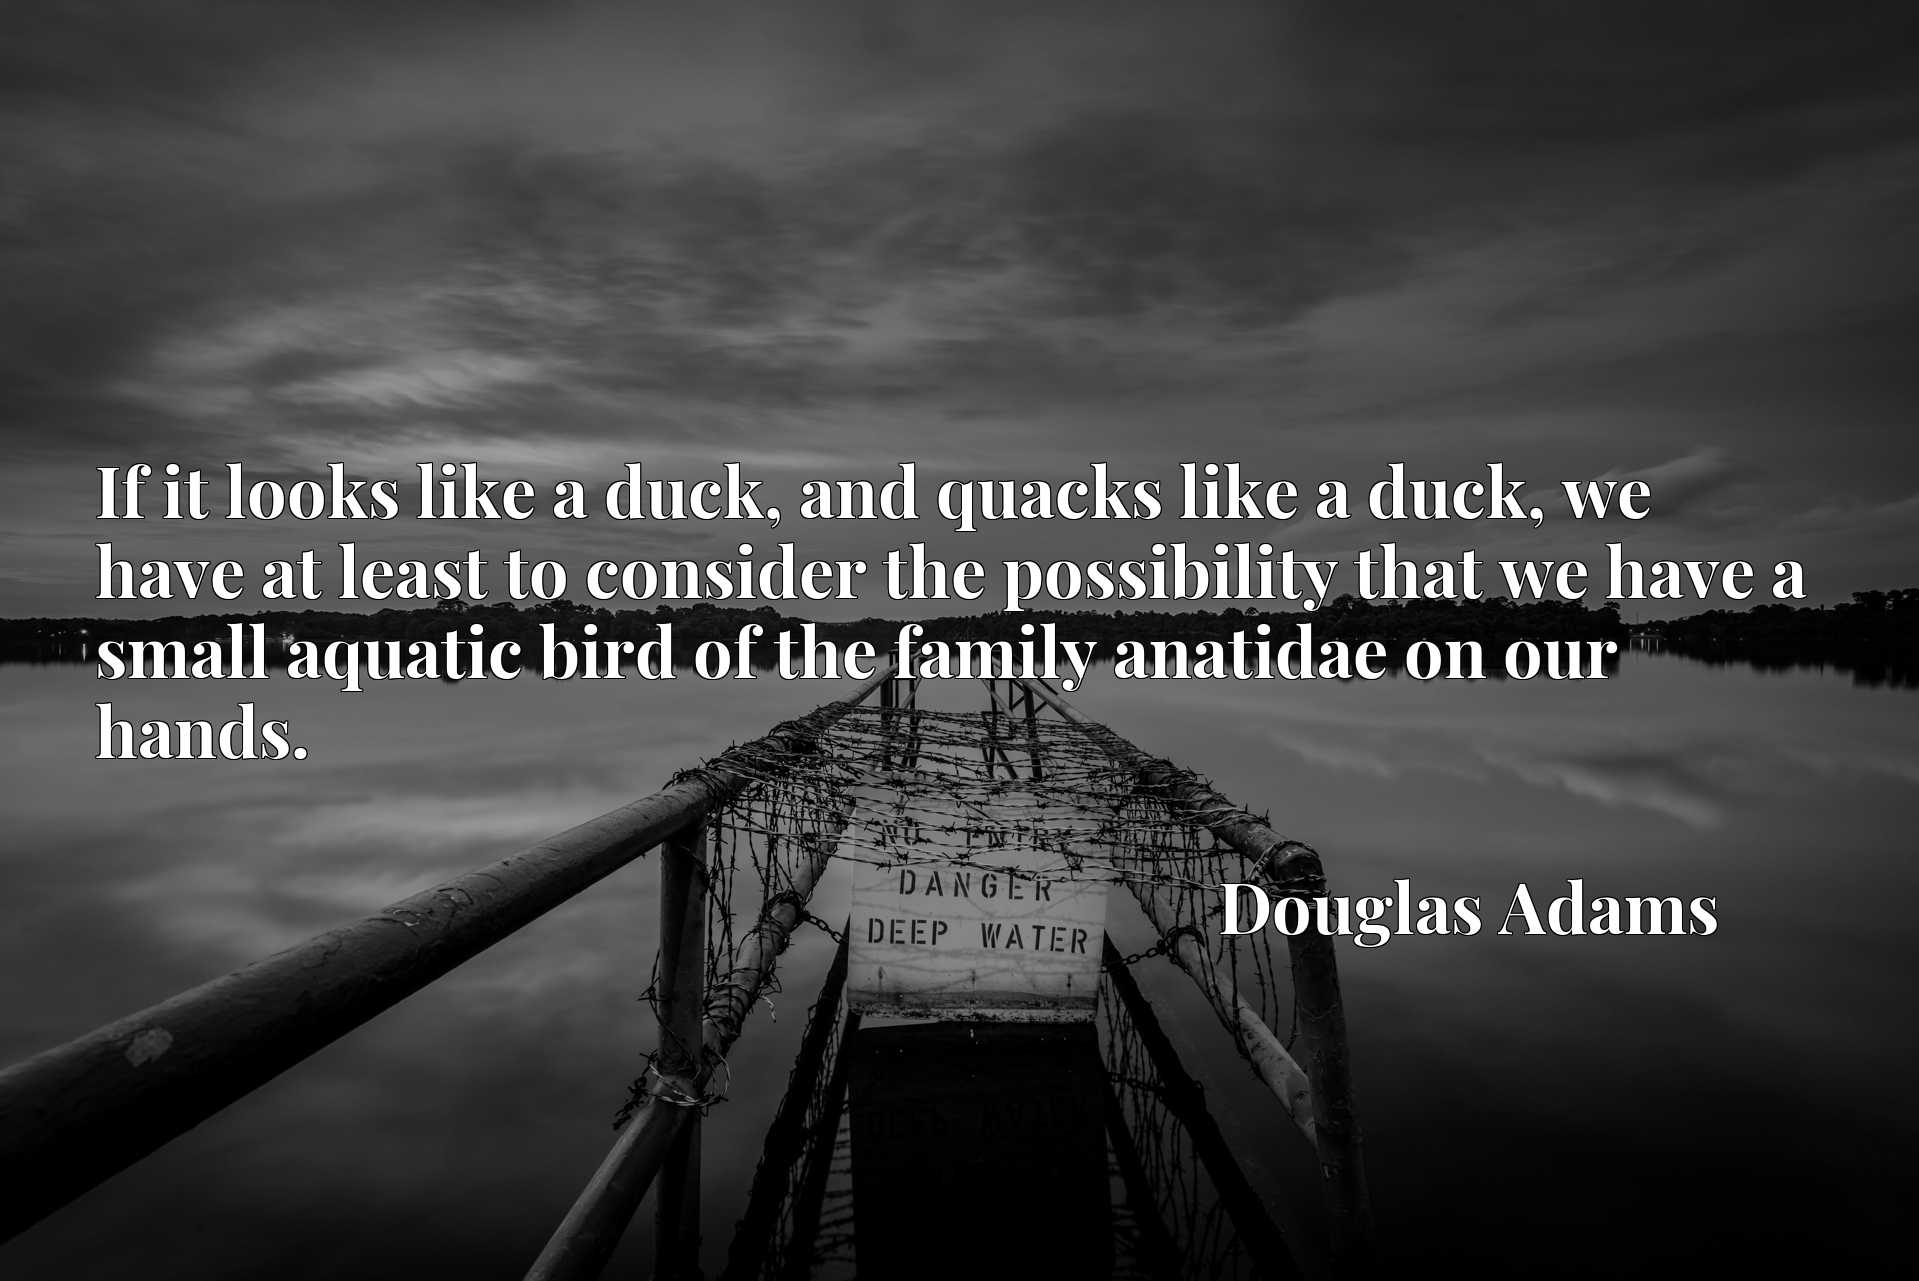 If it looks like a duck, and quacks like a duck, we have at least to consider the possibility that we have a small aquatic bird of the family anatidae on our hands.